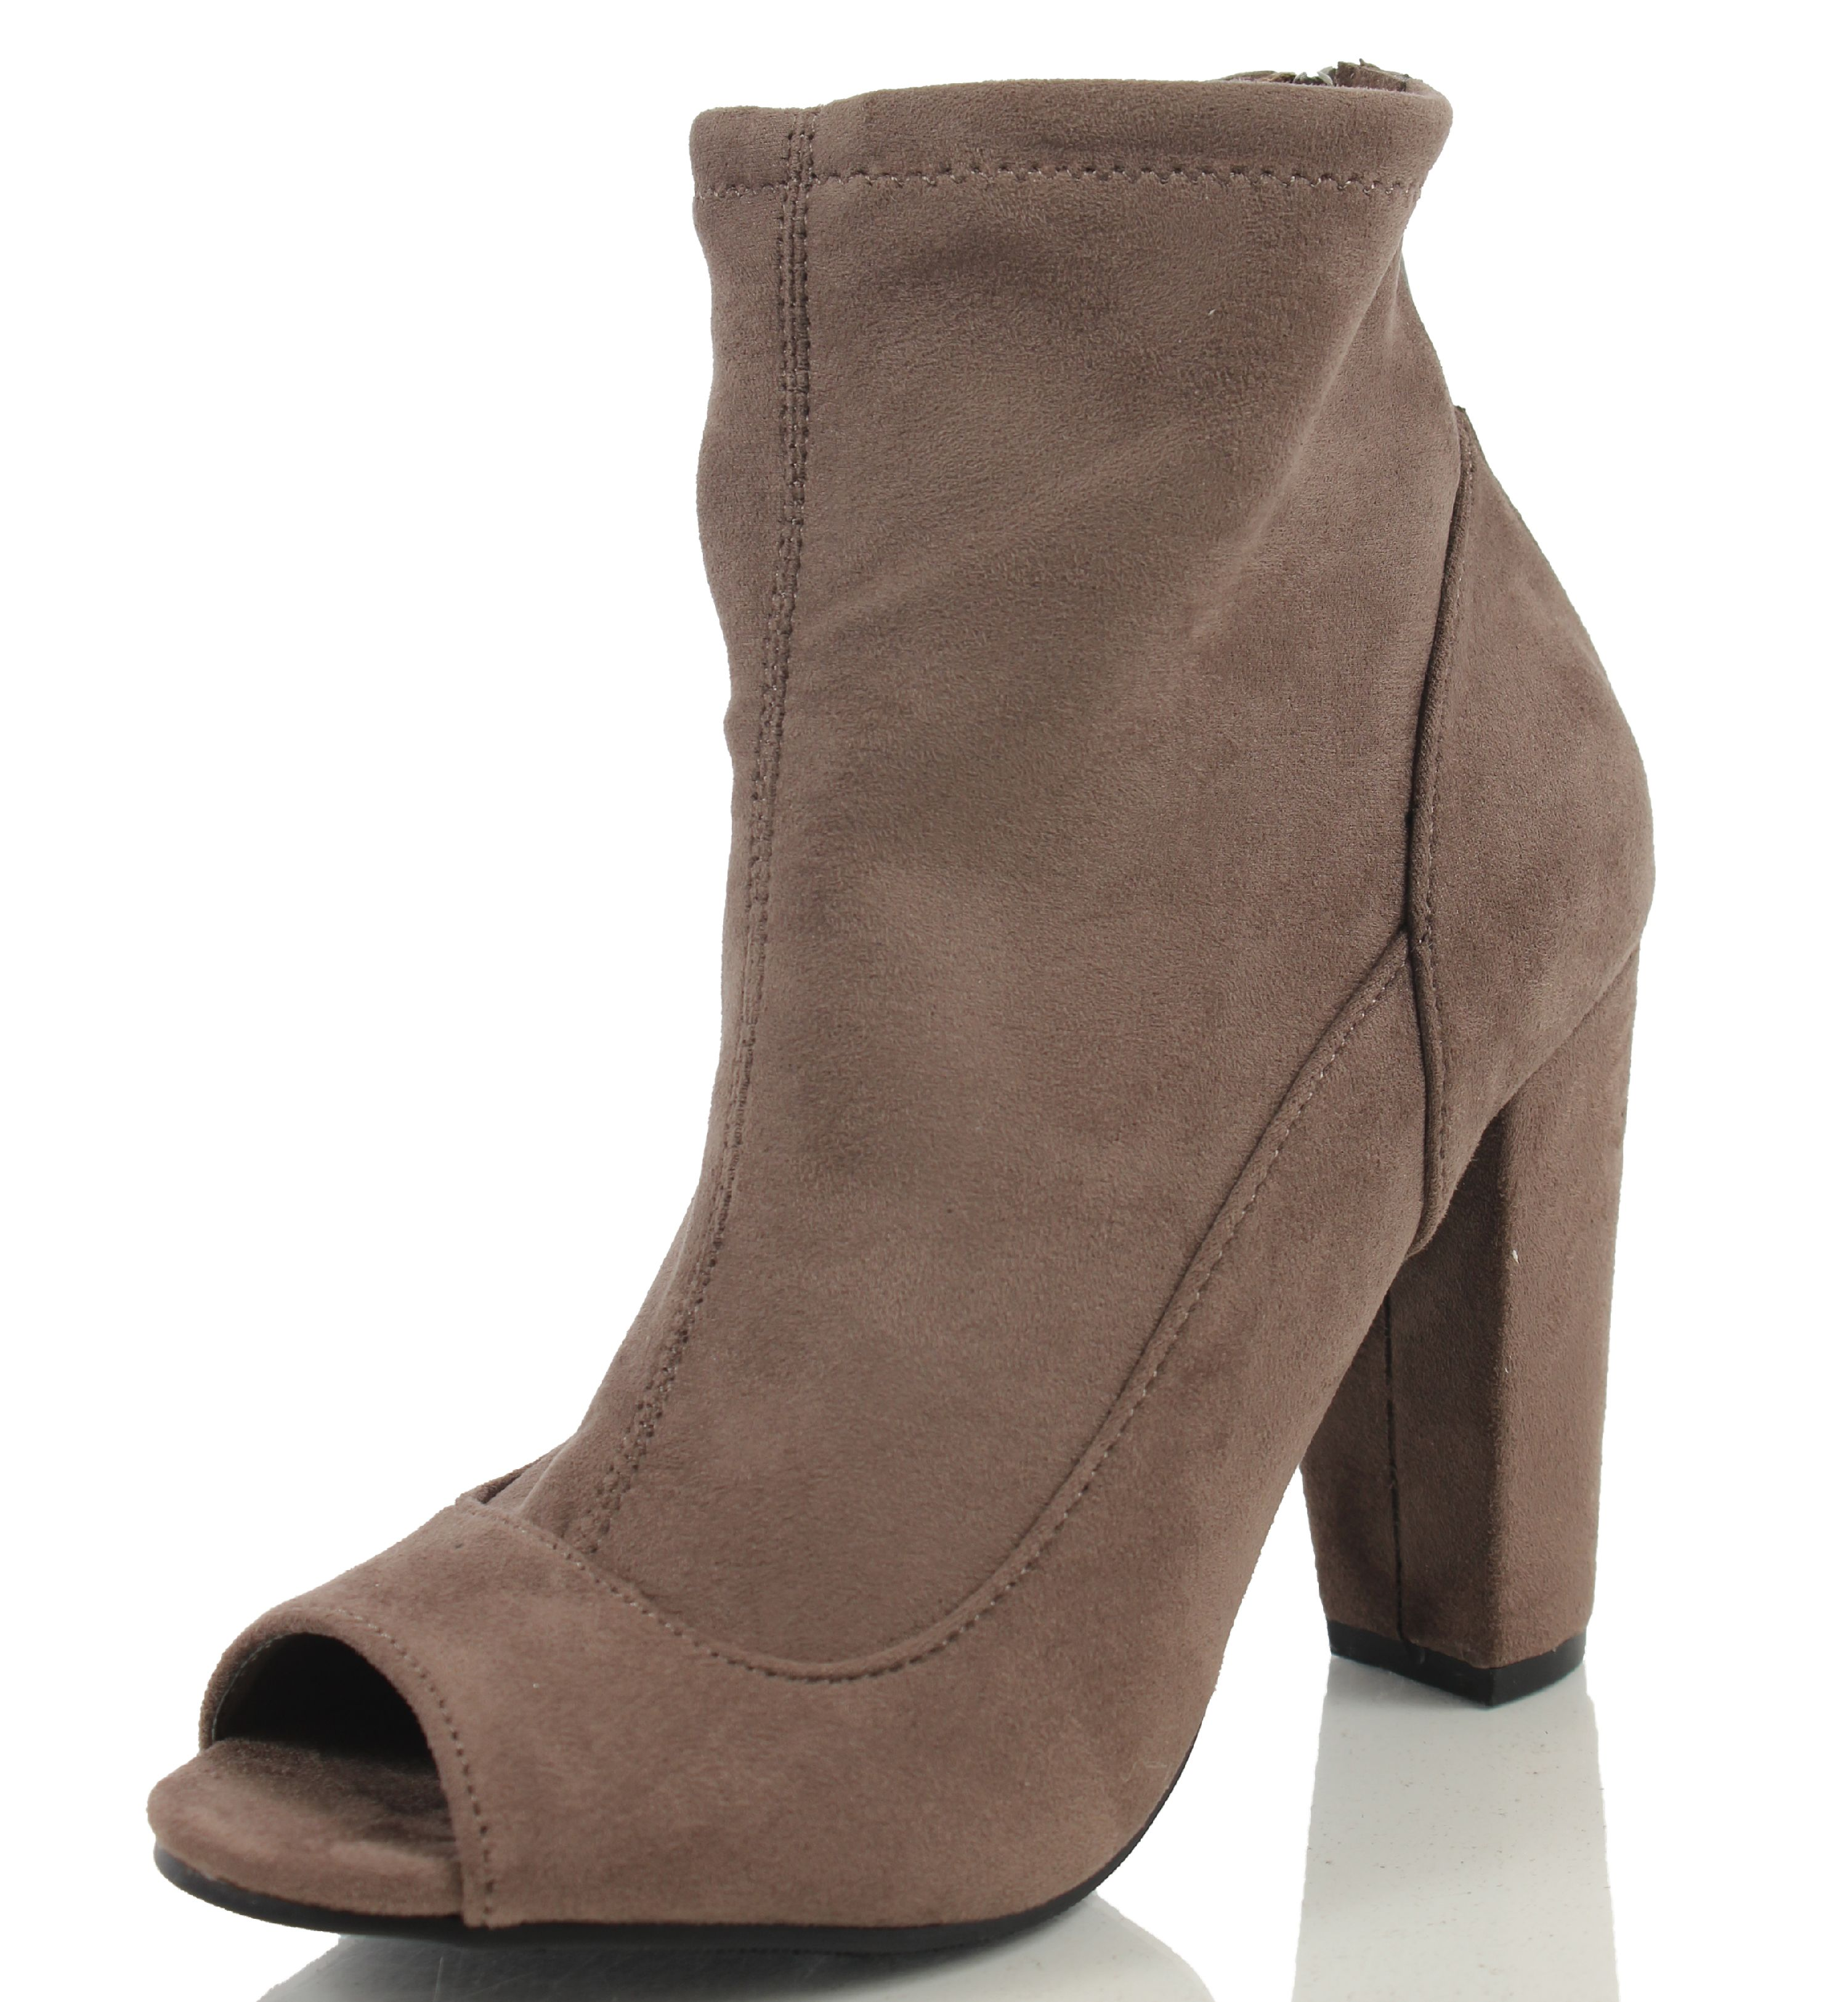 Ankle boots in imitation suede with a zip in the side and